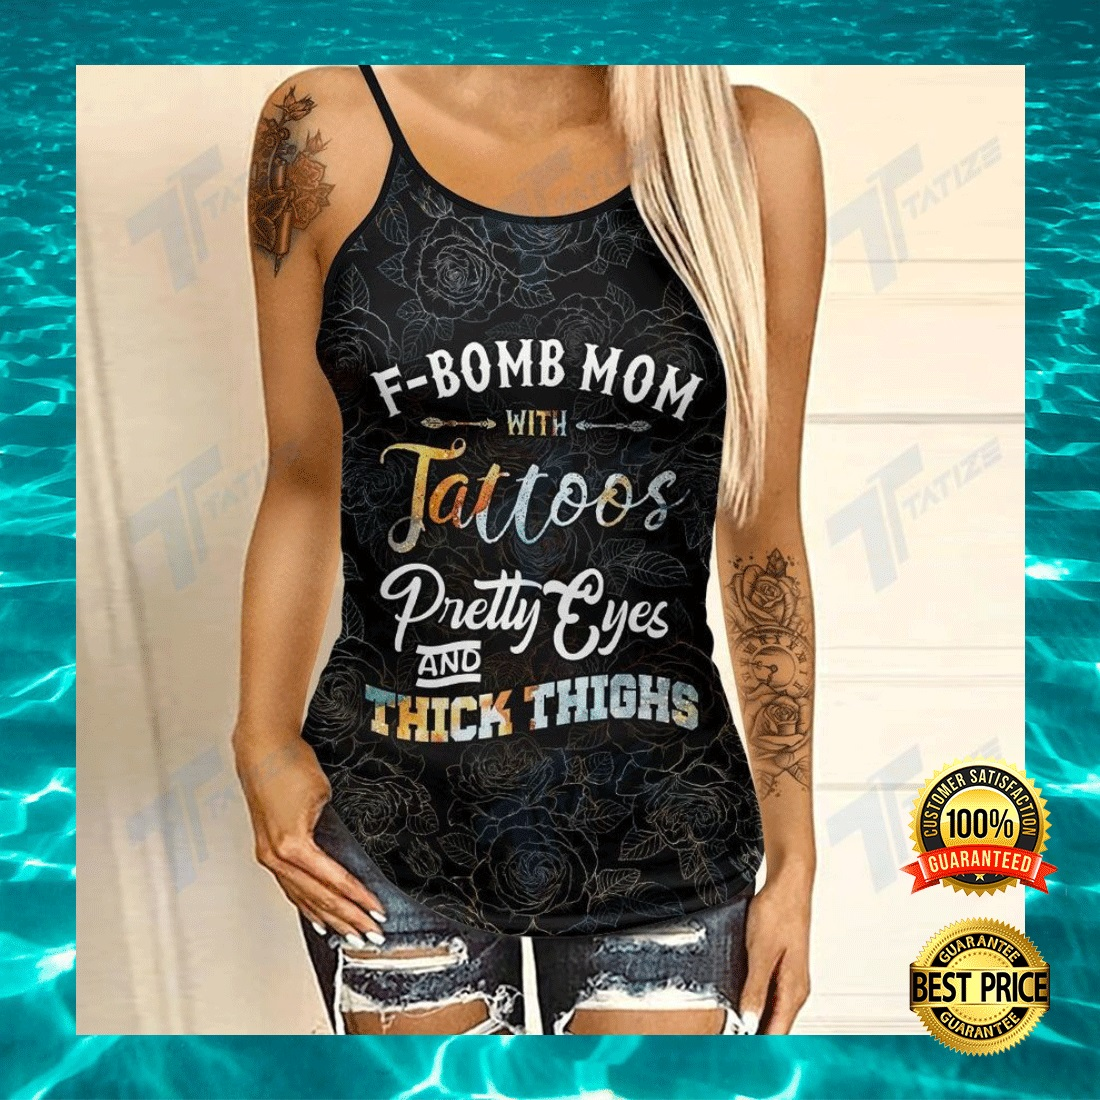 F-BOMB MOM WITH TATTOOS PRETTY EYES AND THICK THIGHS CRISS-CROSS TANK TOP 4